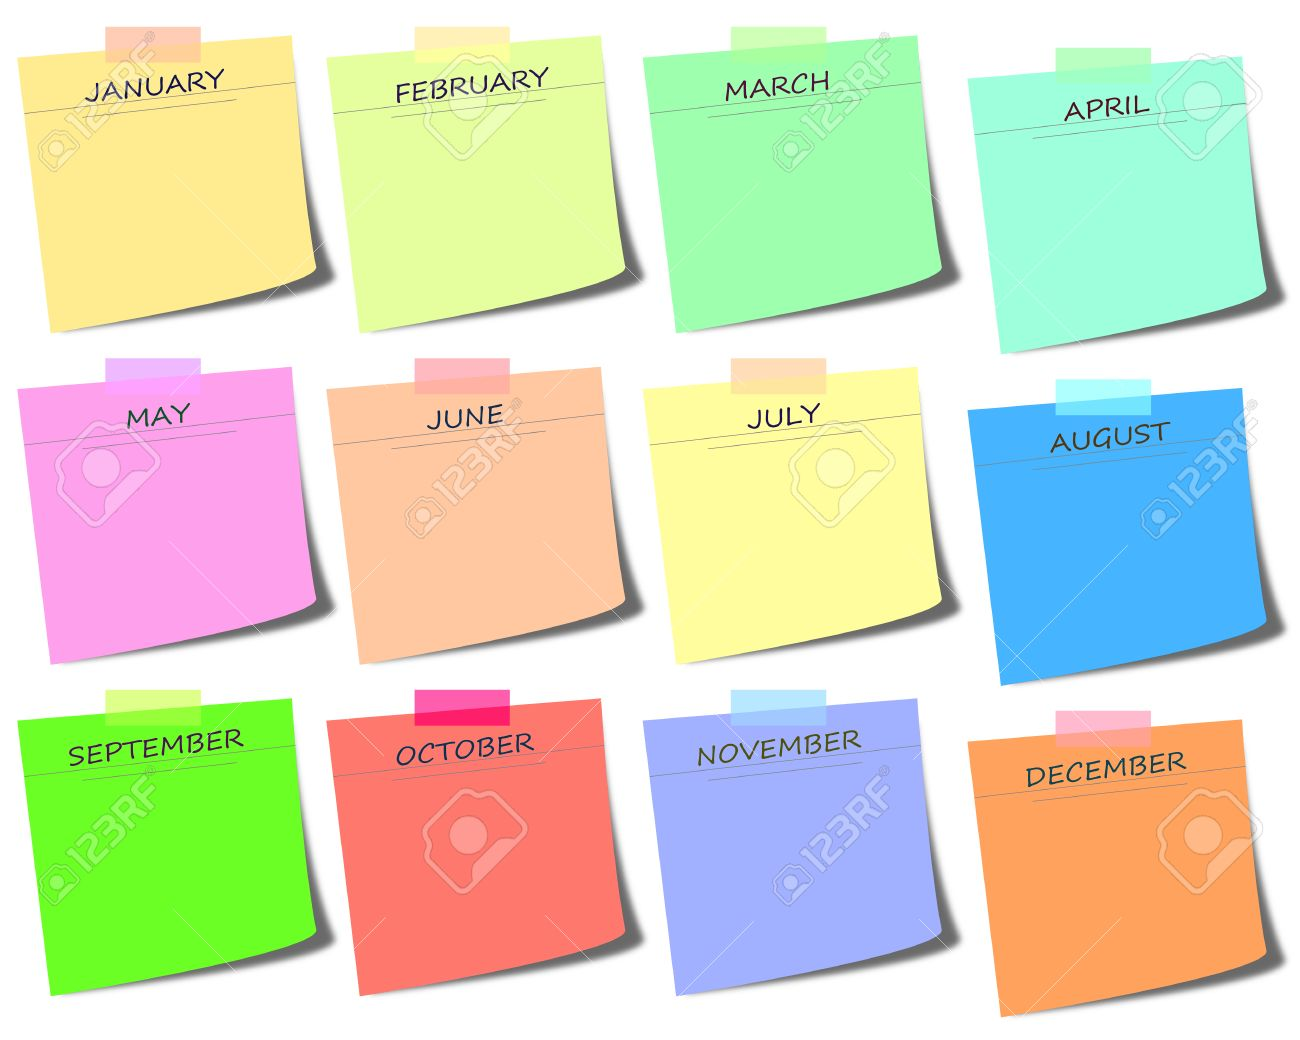 colorful sticky notes with months calendar icon illustration stock